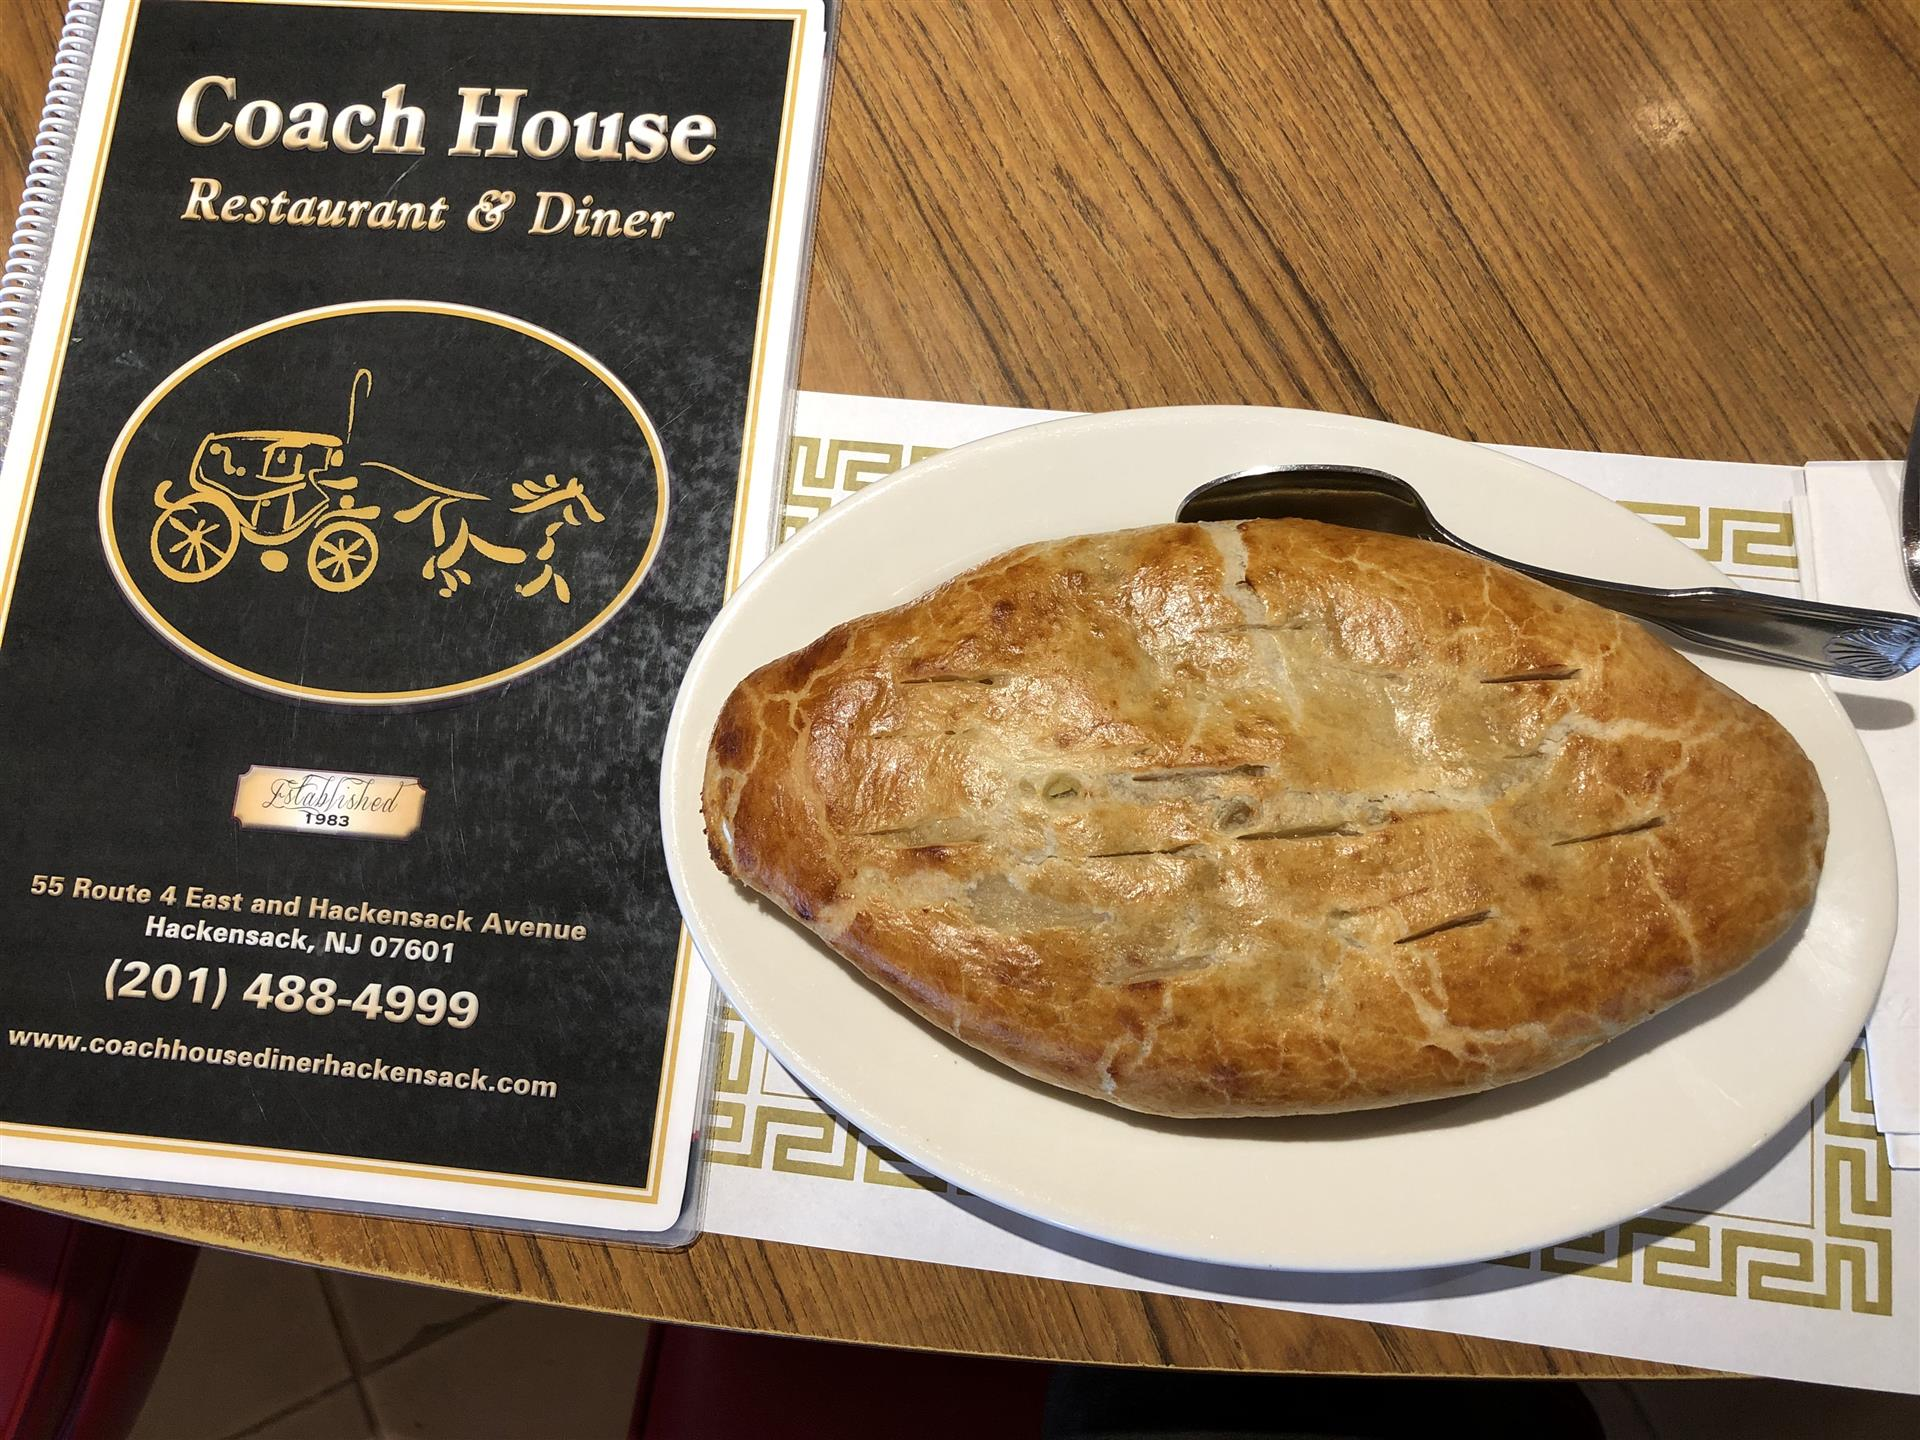 Chicken Pot pie with a fork in it next to Coach House Diner menu